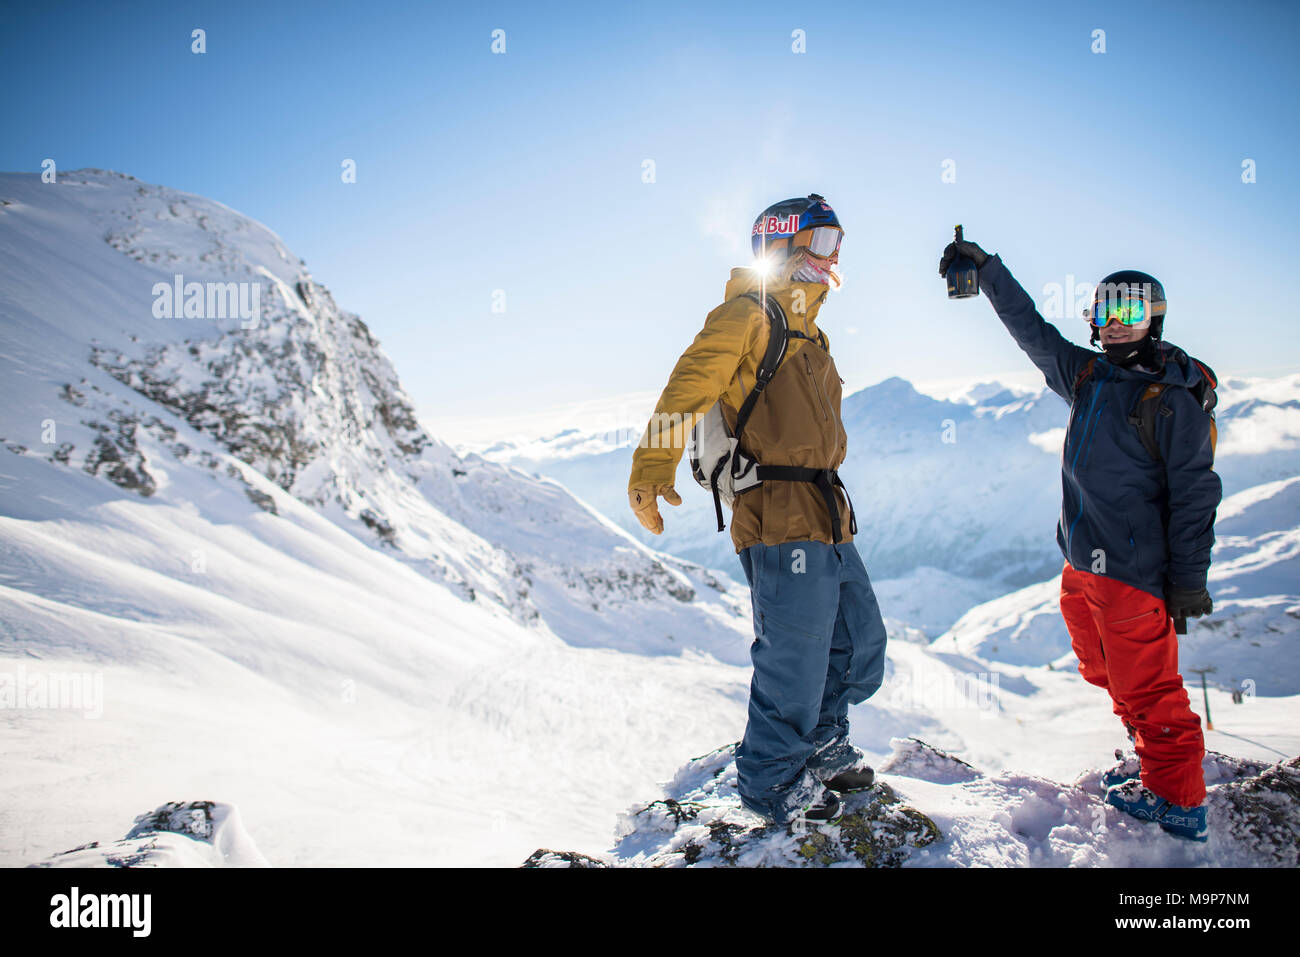 Professional skiers wearing skiwear and standing in winter scenery with mountains, Monterosa Ski mountain resort in Gressoney, Aosta, Italy - Stock Image